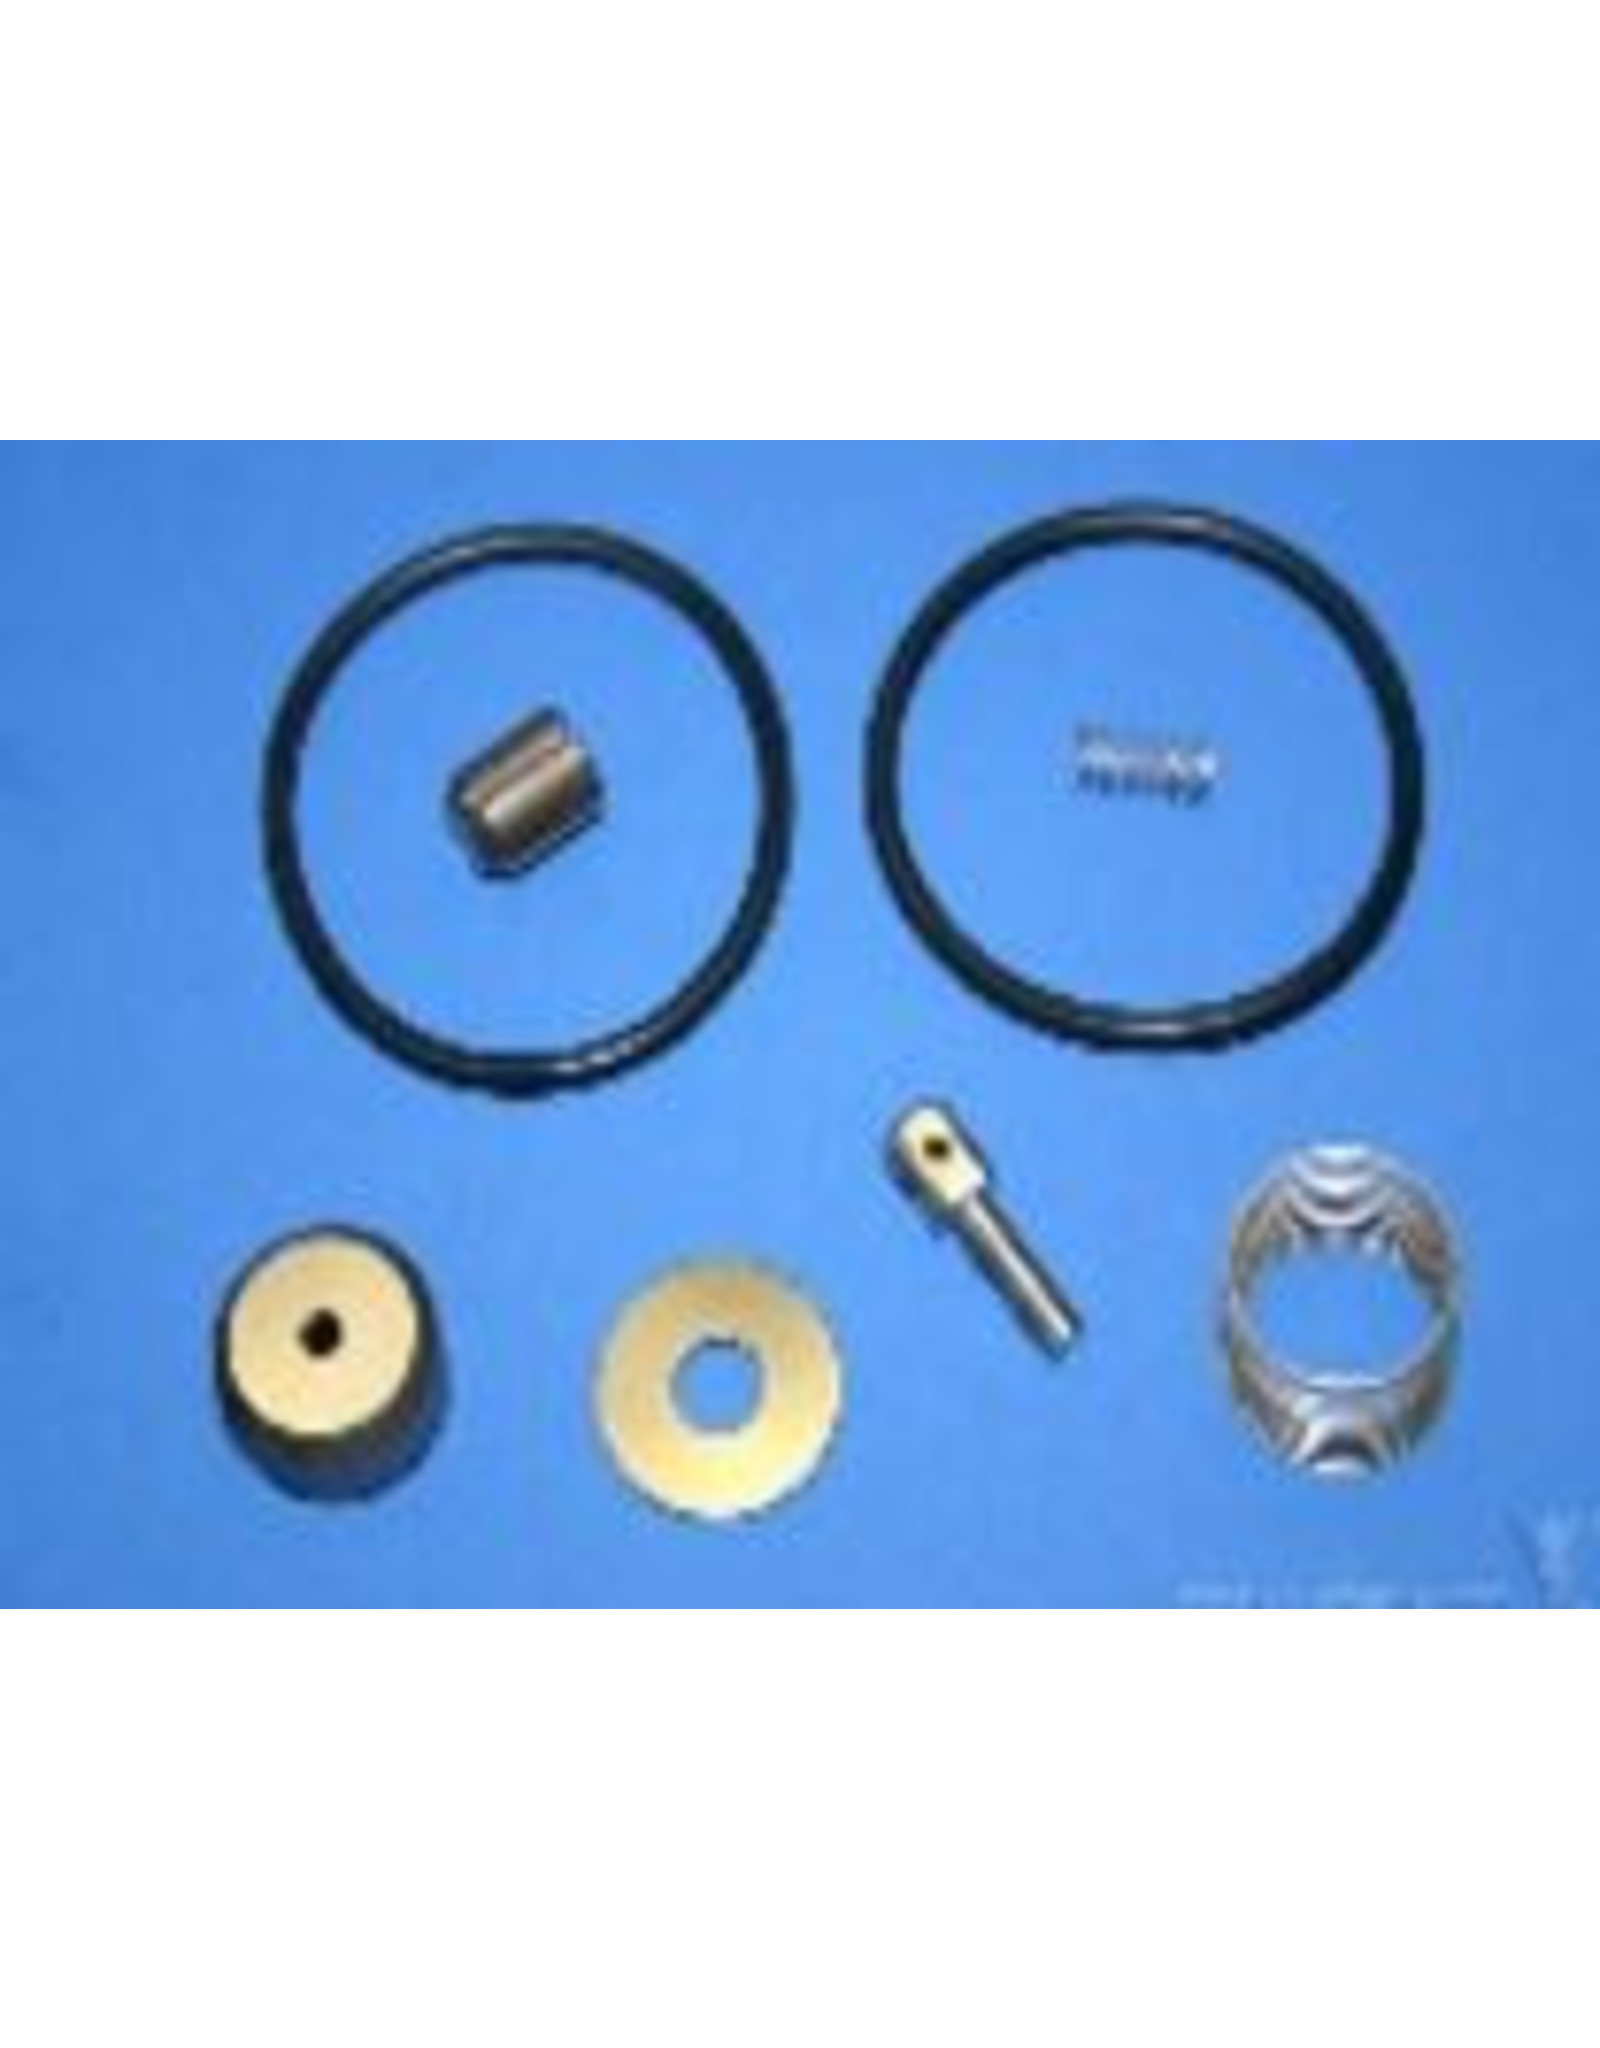 KMT Style Check Valve Kit, SL4+ CKV Assembly, Low Pressure